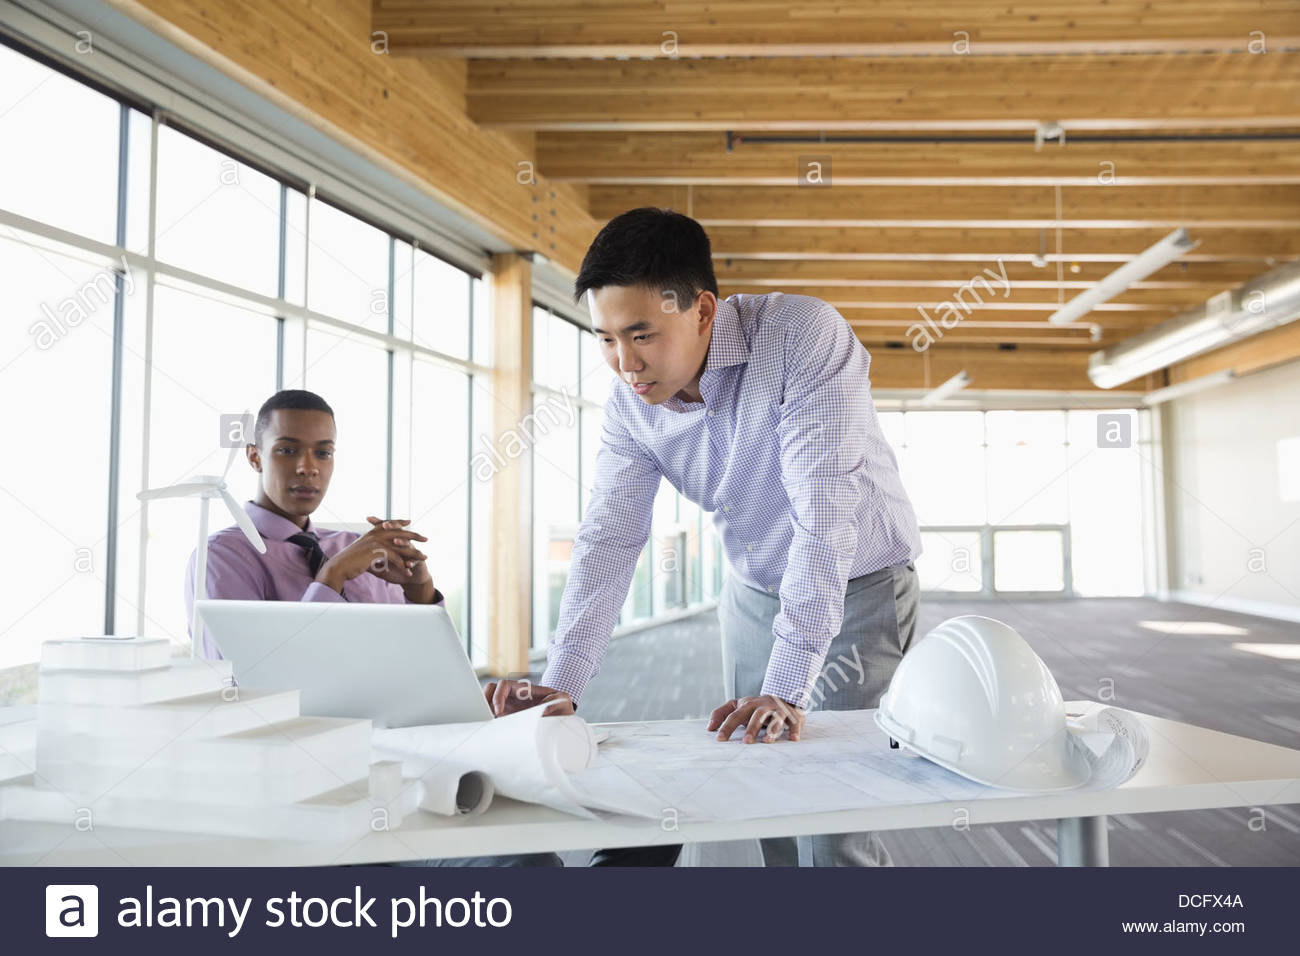 Engineers discussing plans over laptop - Stock Image